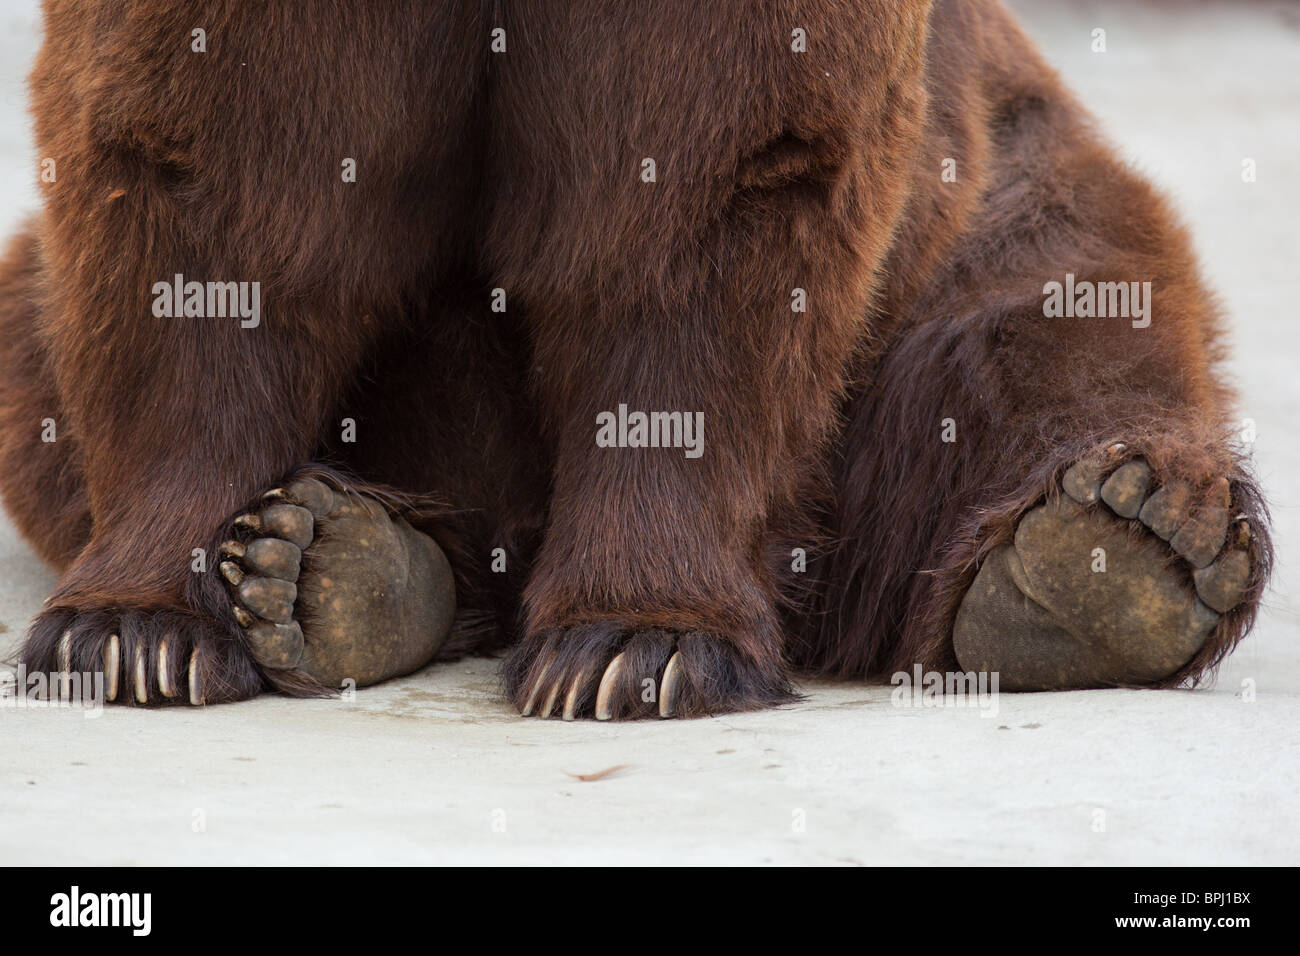 About bear paws